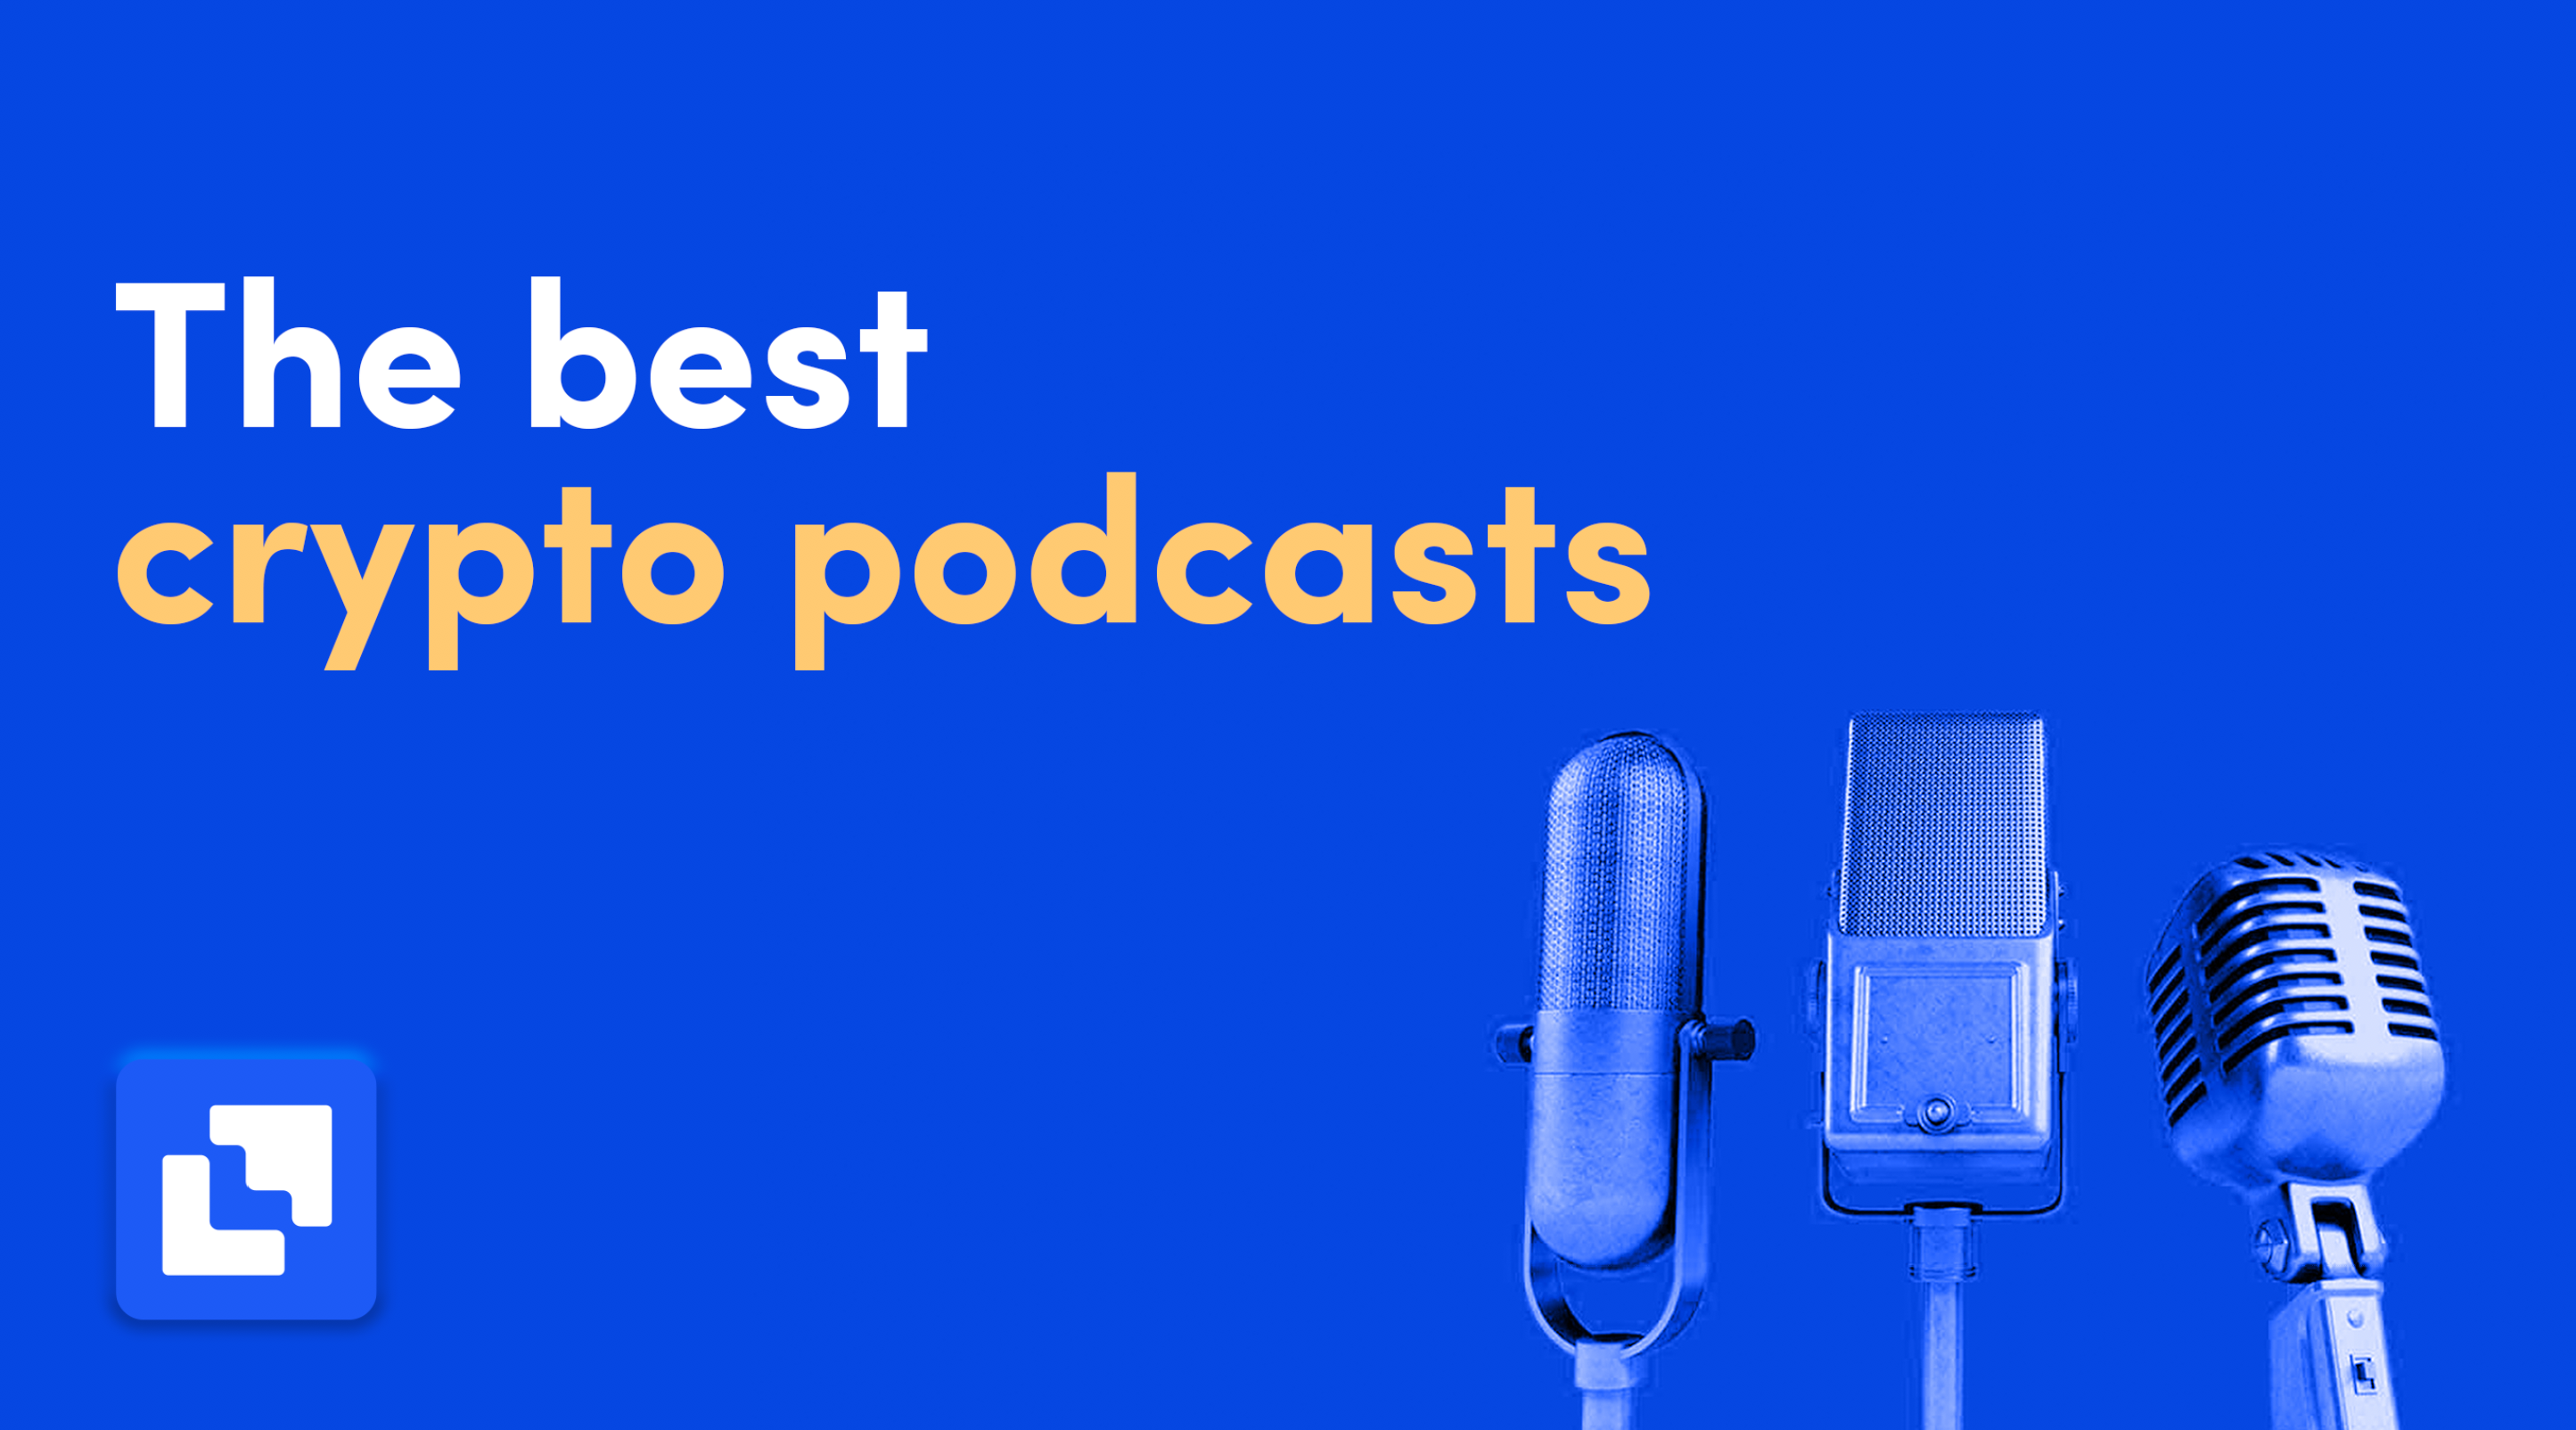 best crypto podcasts 2021 from Liquid exchange